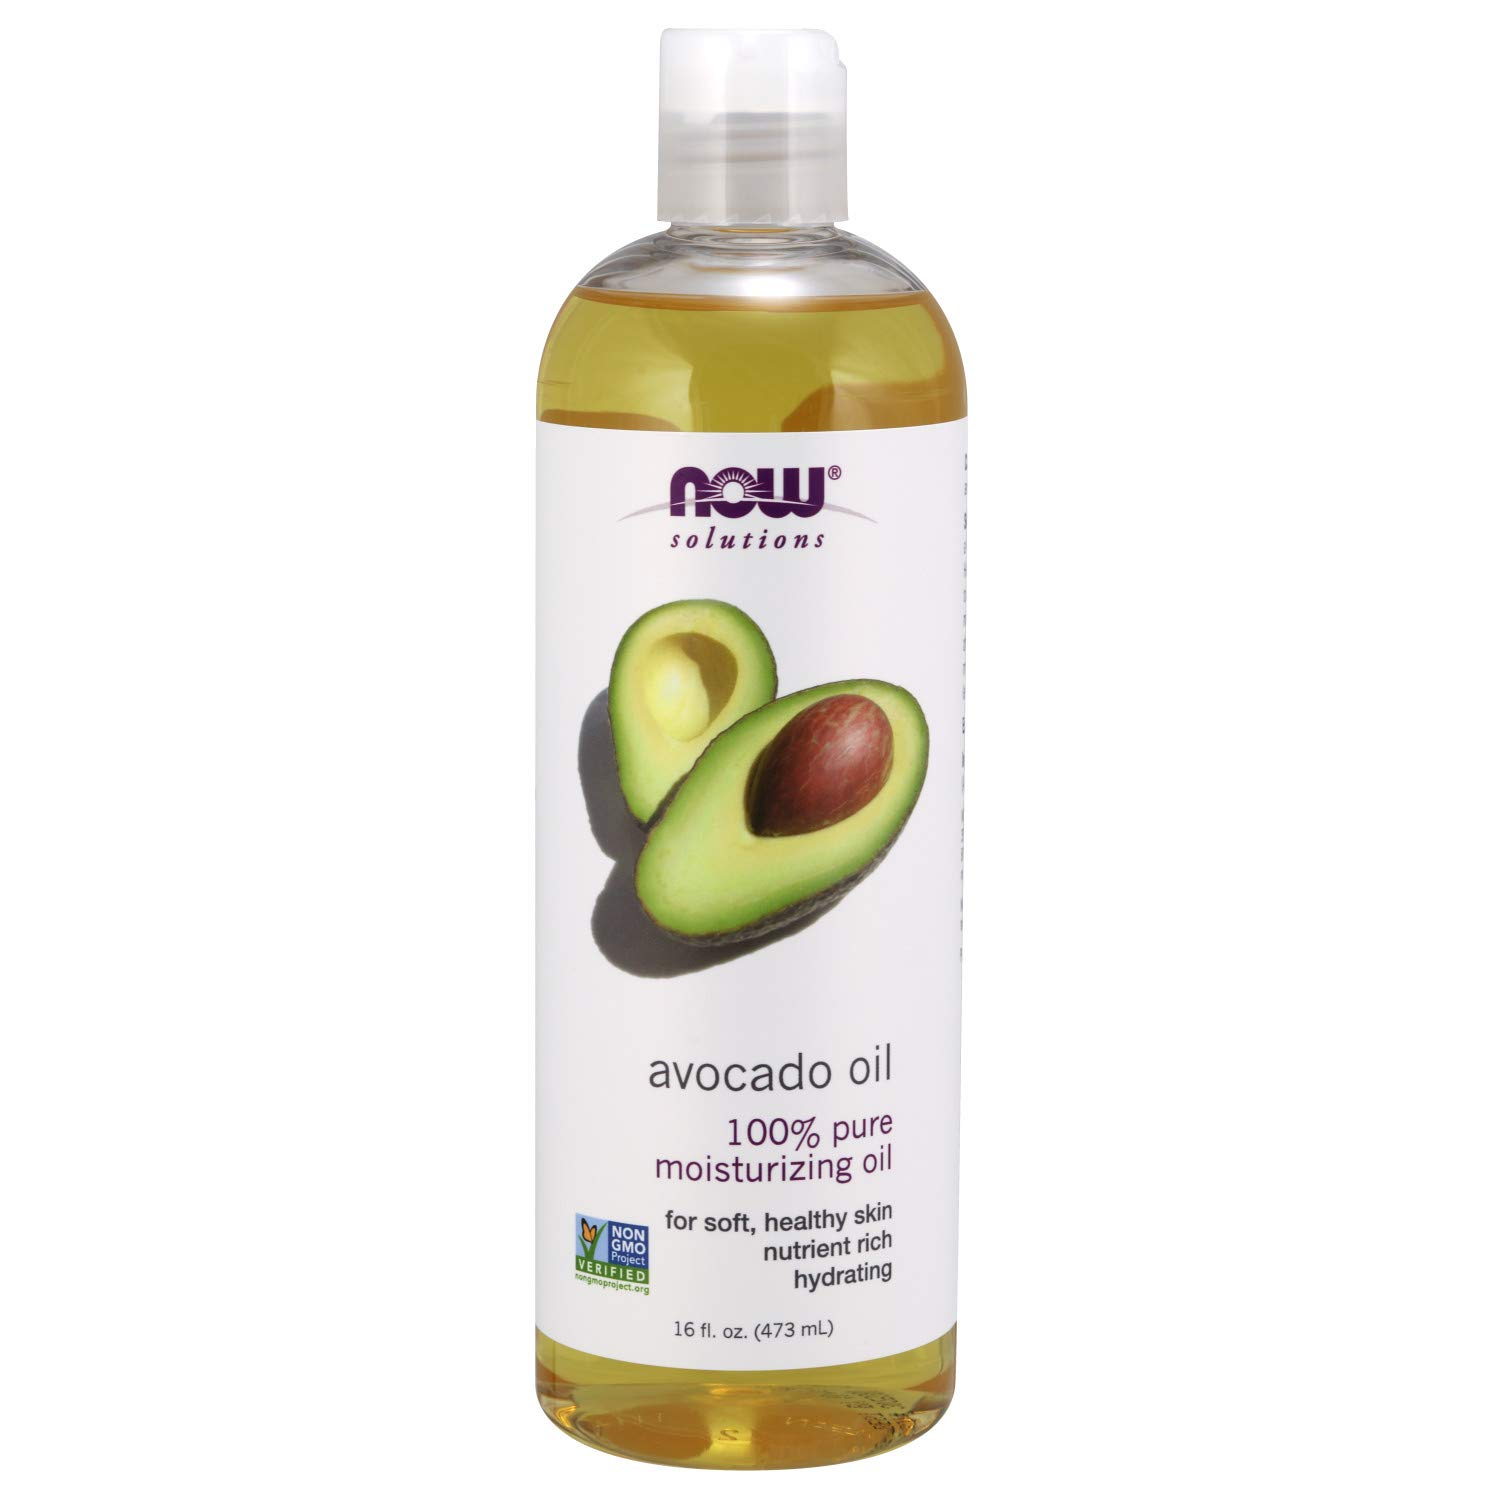 NOW Solutions, Avocado Oil, 100% Pure Moisturizing Oil, Nutrient Rich and Hydrating, 16-Ounce by NOW Foods